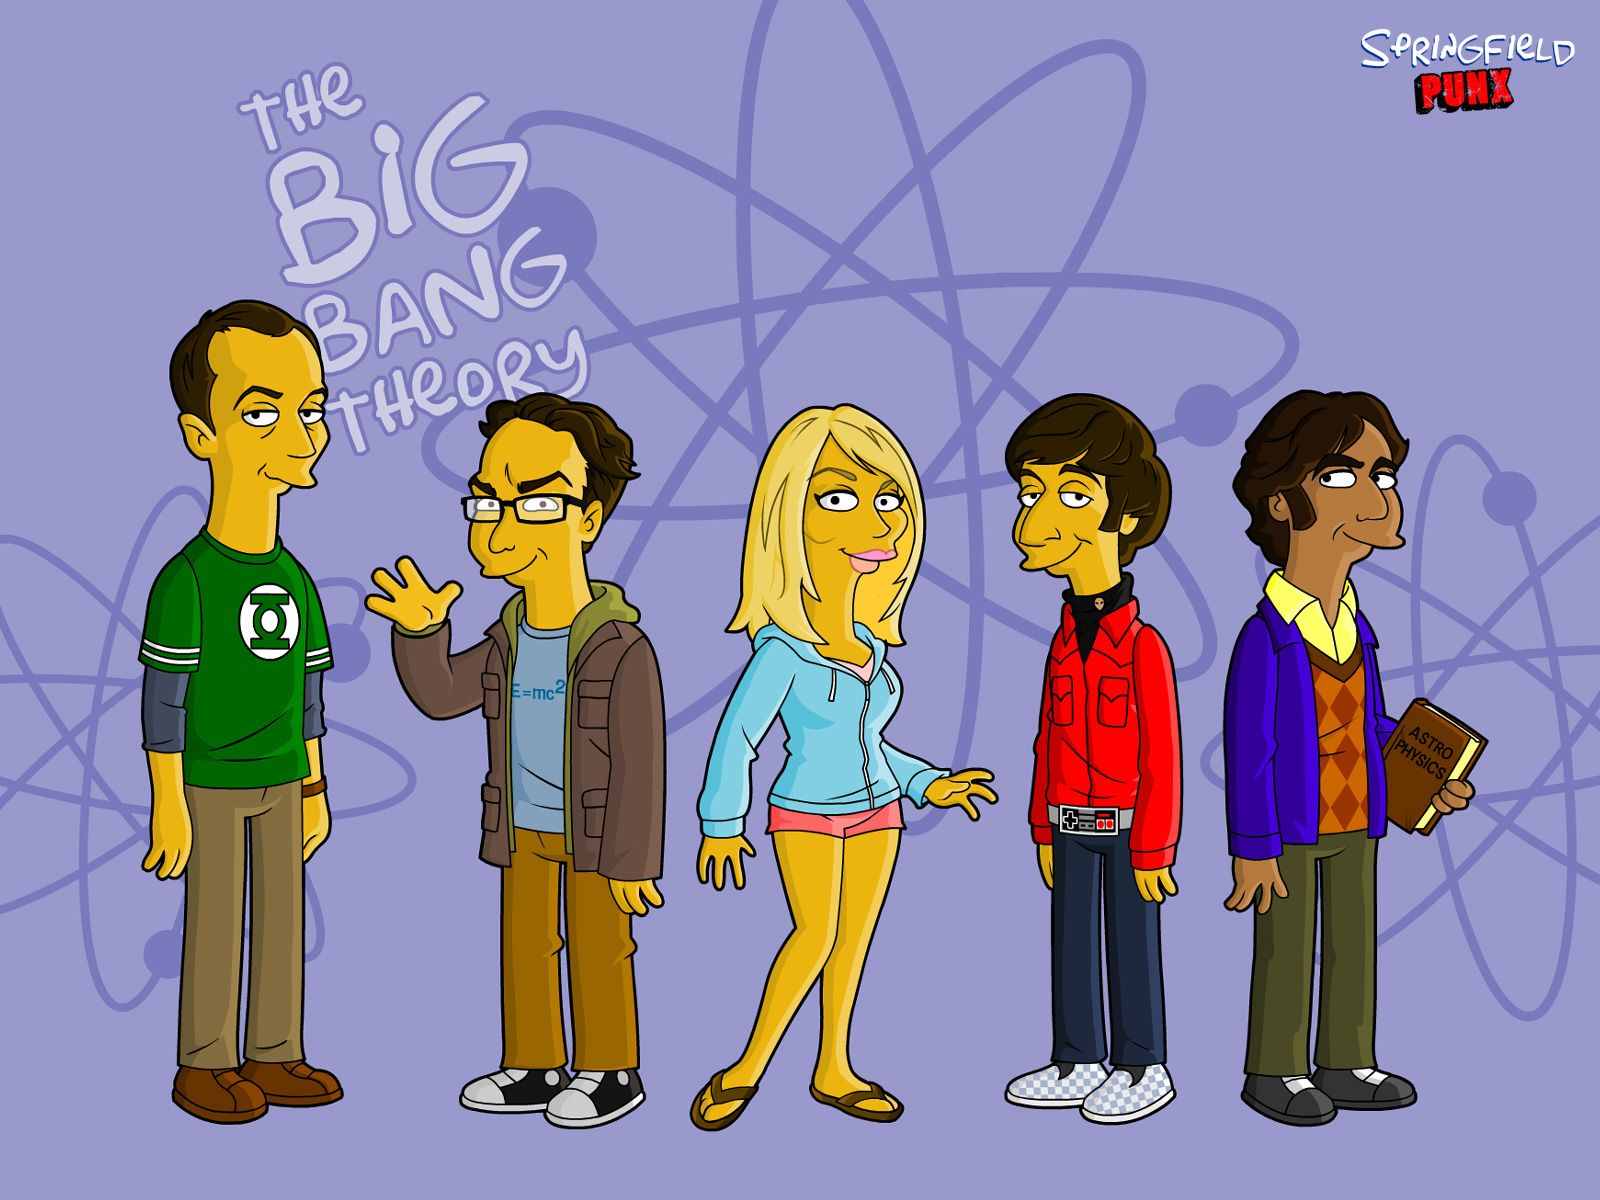 Big Bang Theory Bettwäsche The Big Bang Theory The Big Bang Theory Wallpaper